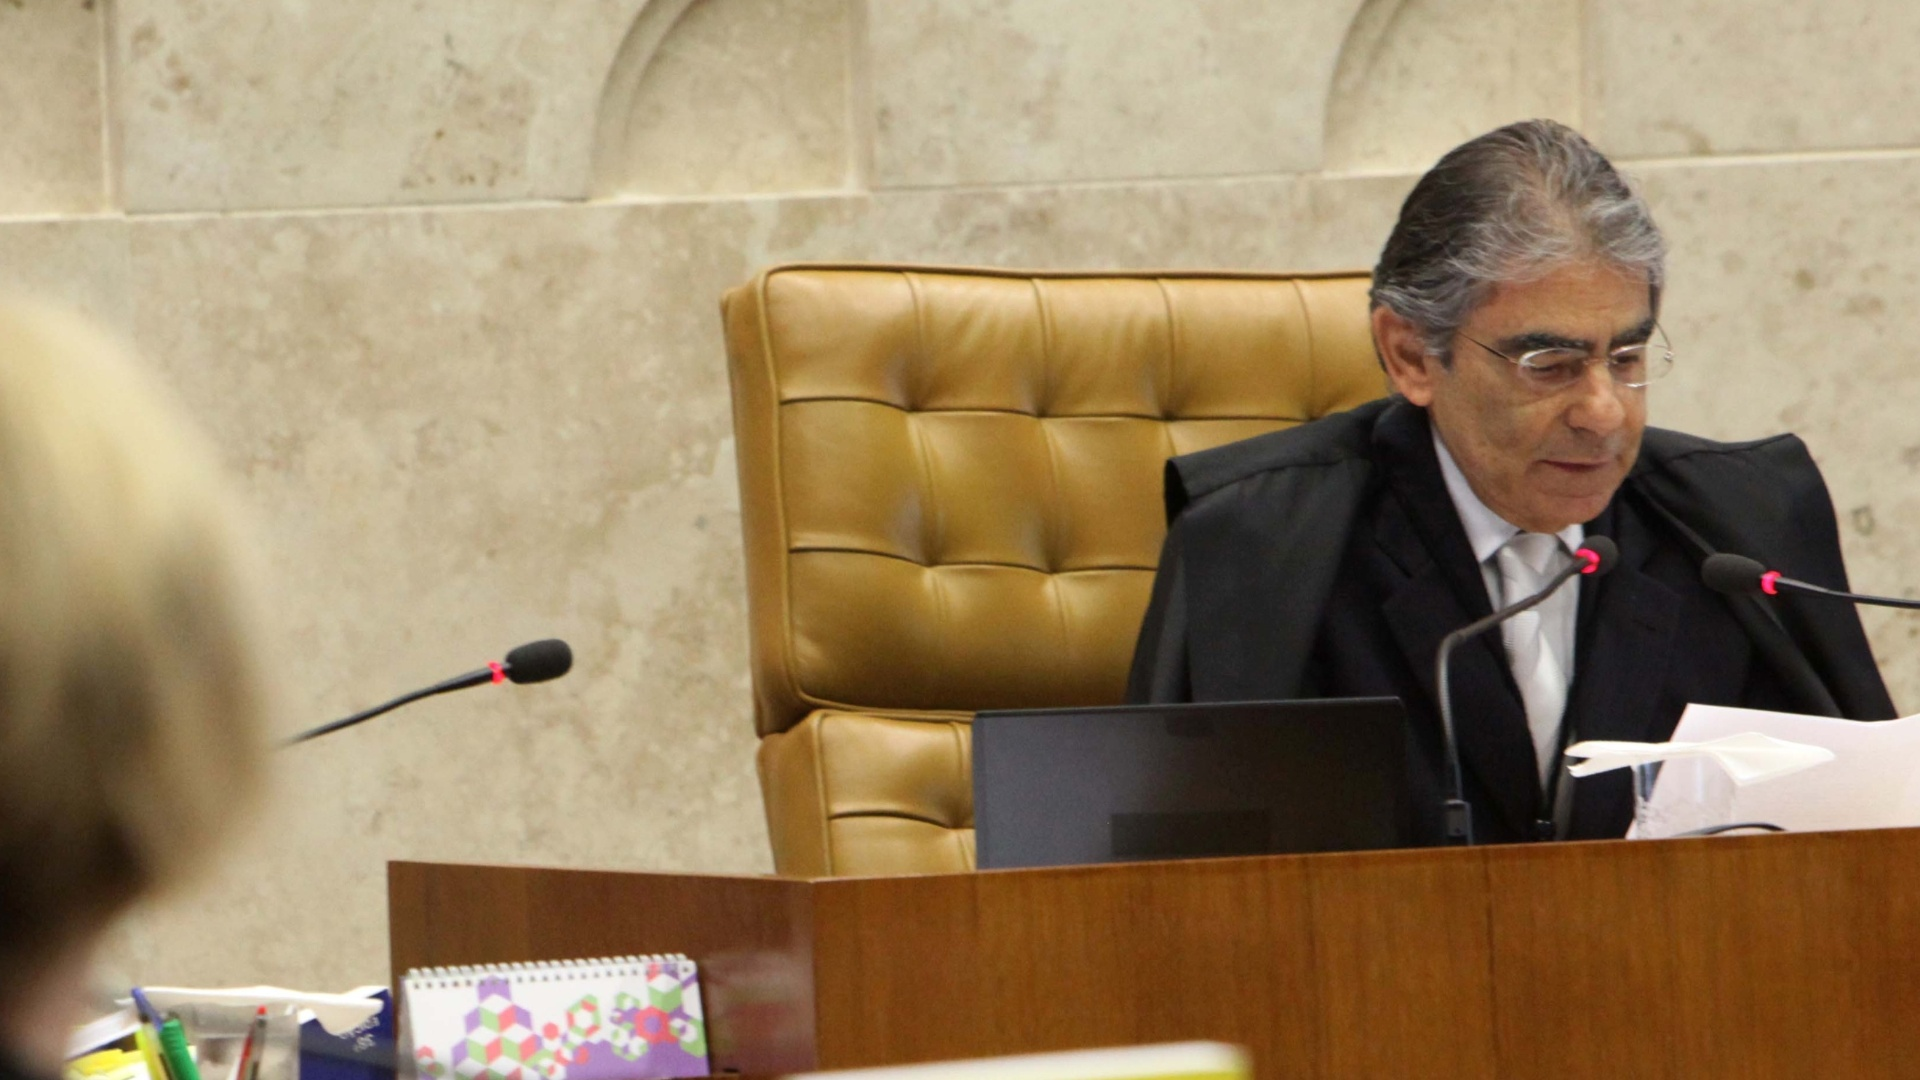 17.out.2012 - O ministro Ayres Britto discursa em sesso do julgamento do mensalo em Braslia